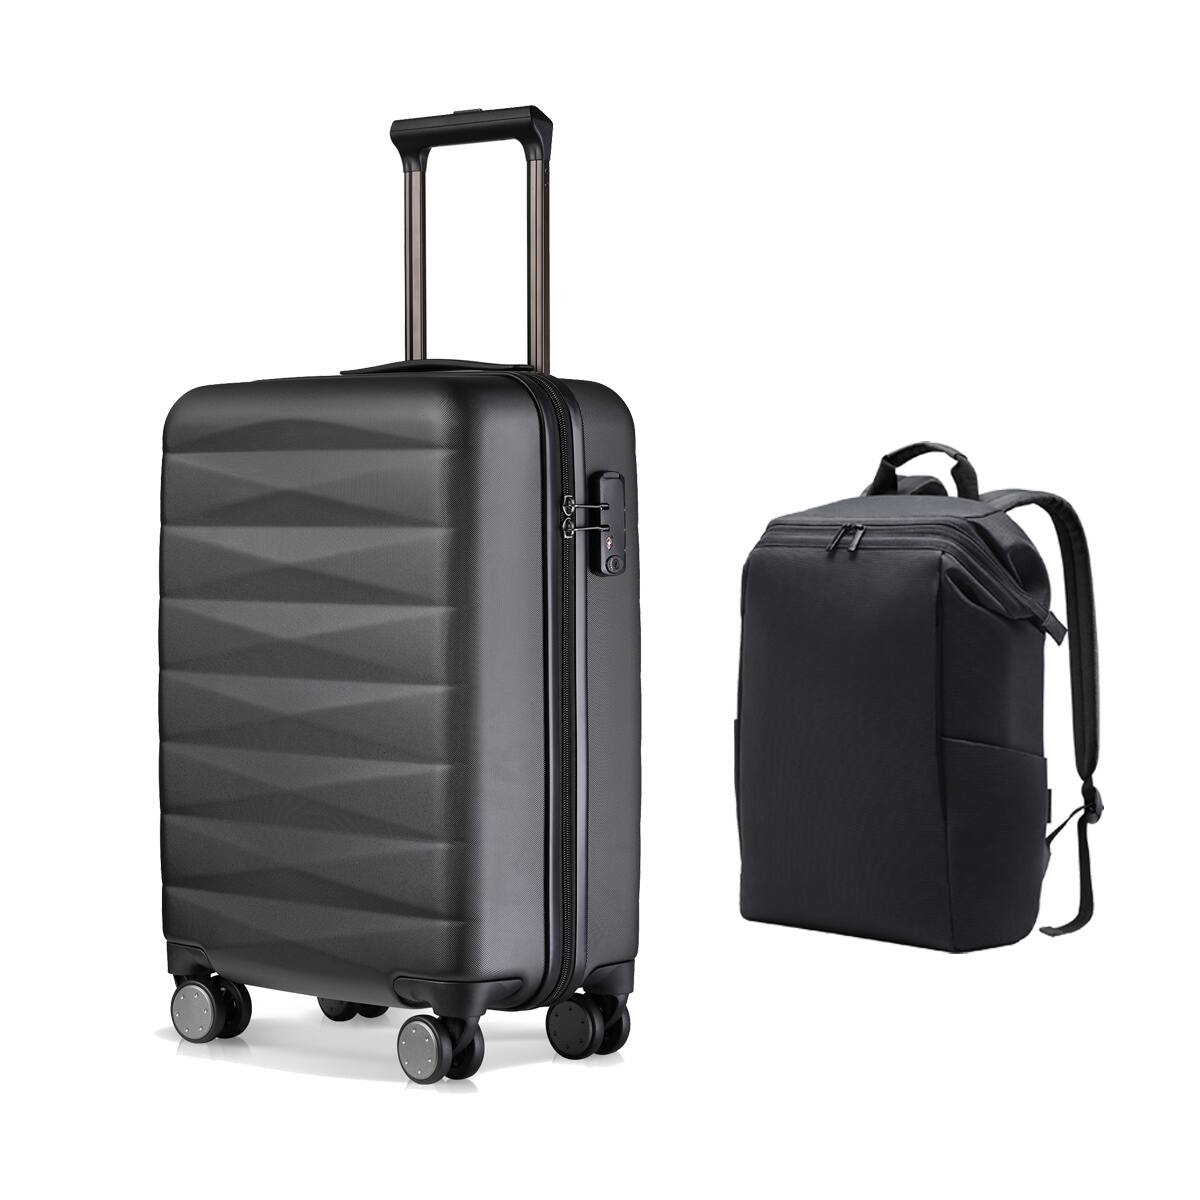 NINETYGO 100% PC Lightweight Carry on Luggage + Laptop Backpack Black $89.98, NINETYGO Carry on Luggage Front Pocket + Laptop Backpack Dark Gray Luggage Tag $139.99 & More